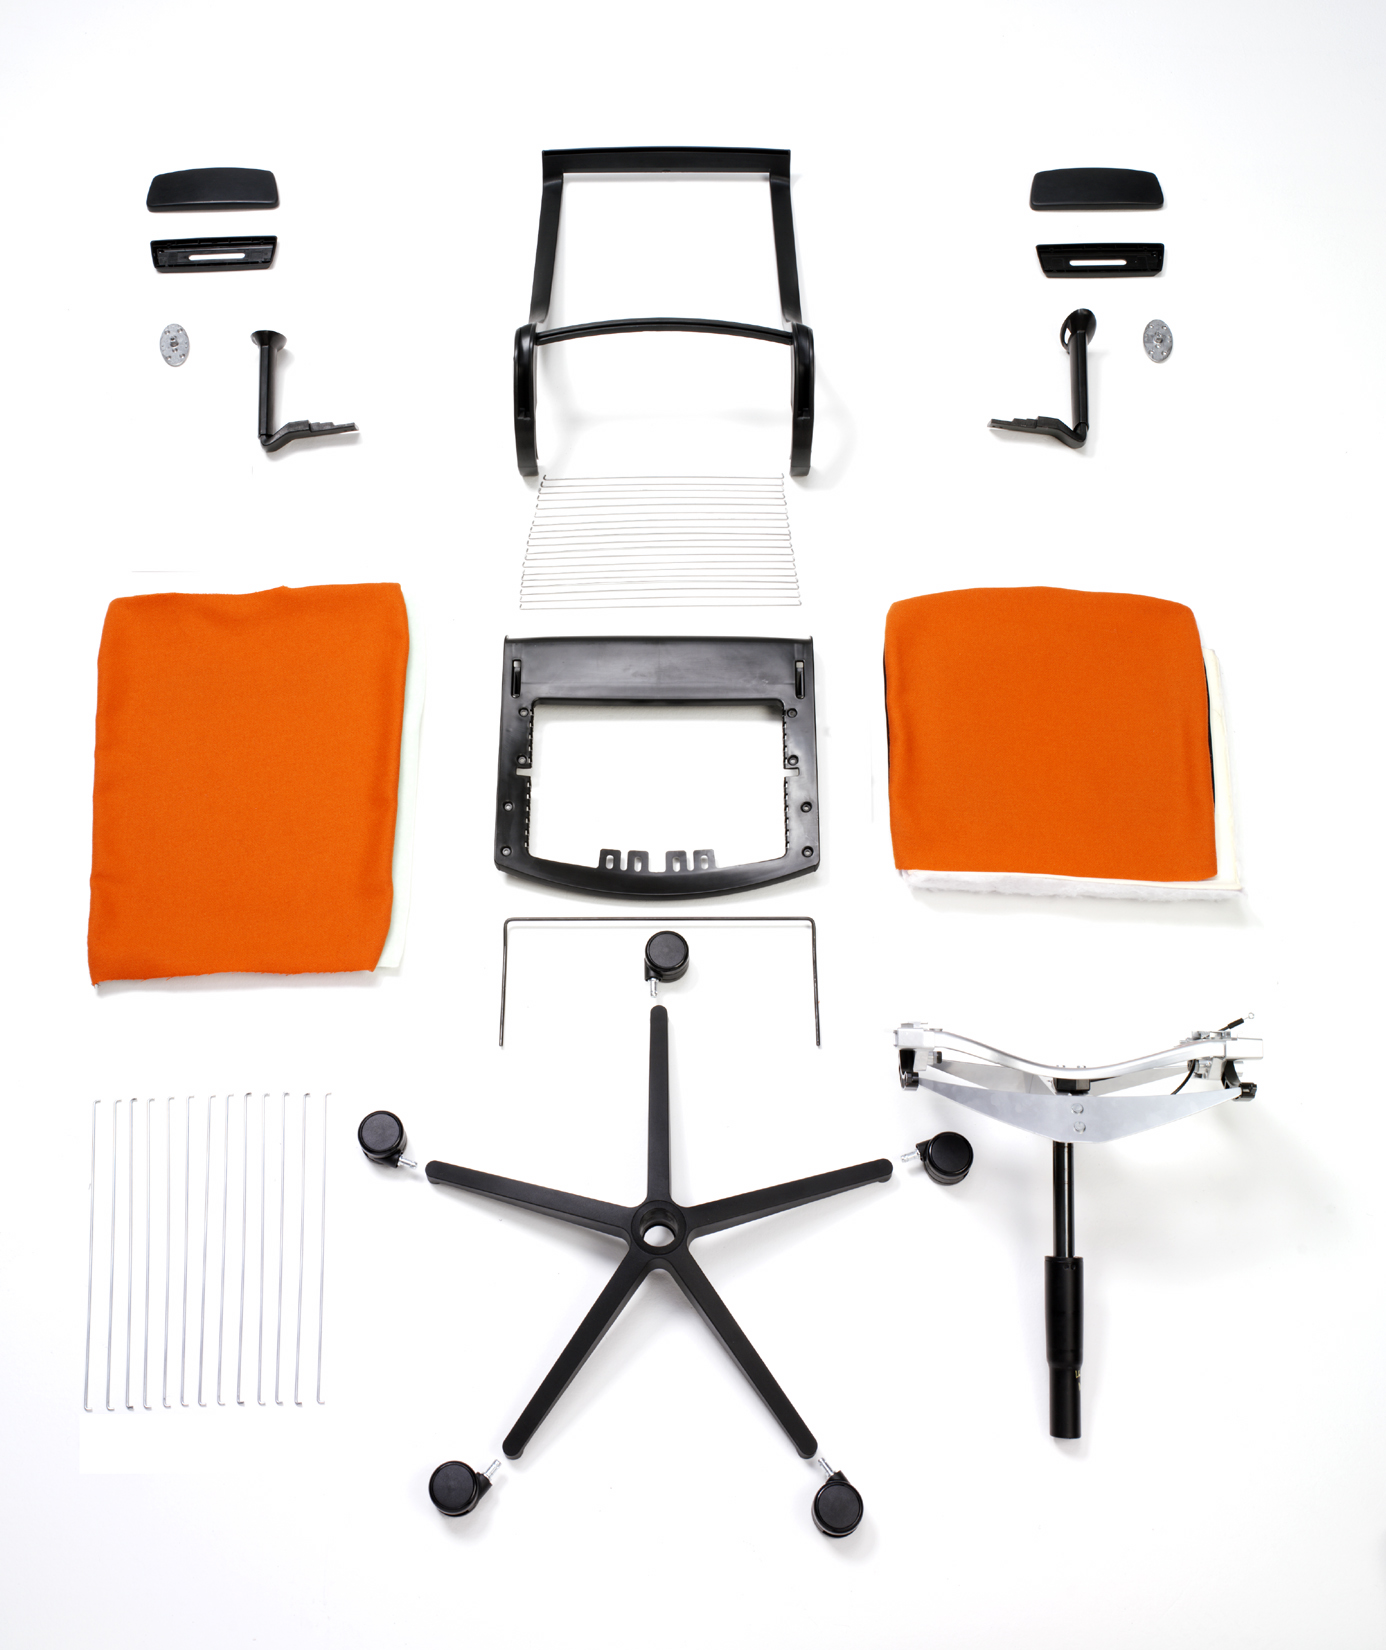 MBDC_Steelcase Think Chair Disassembled